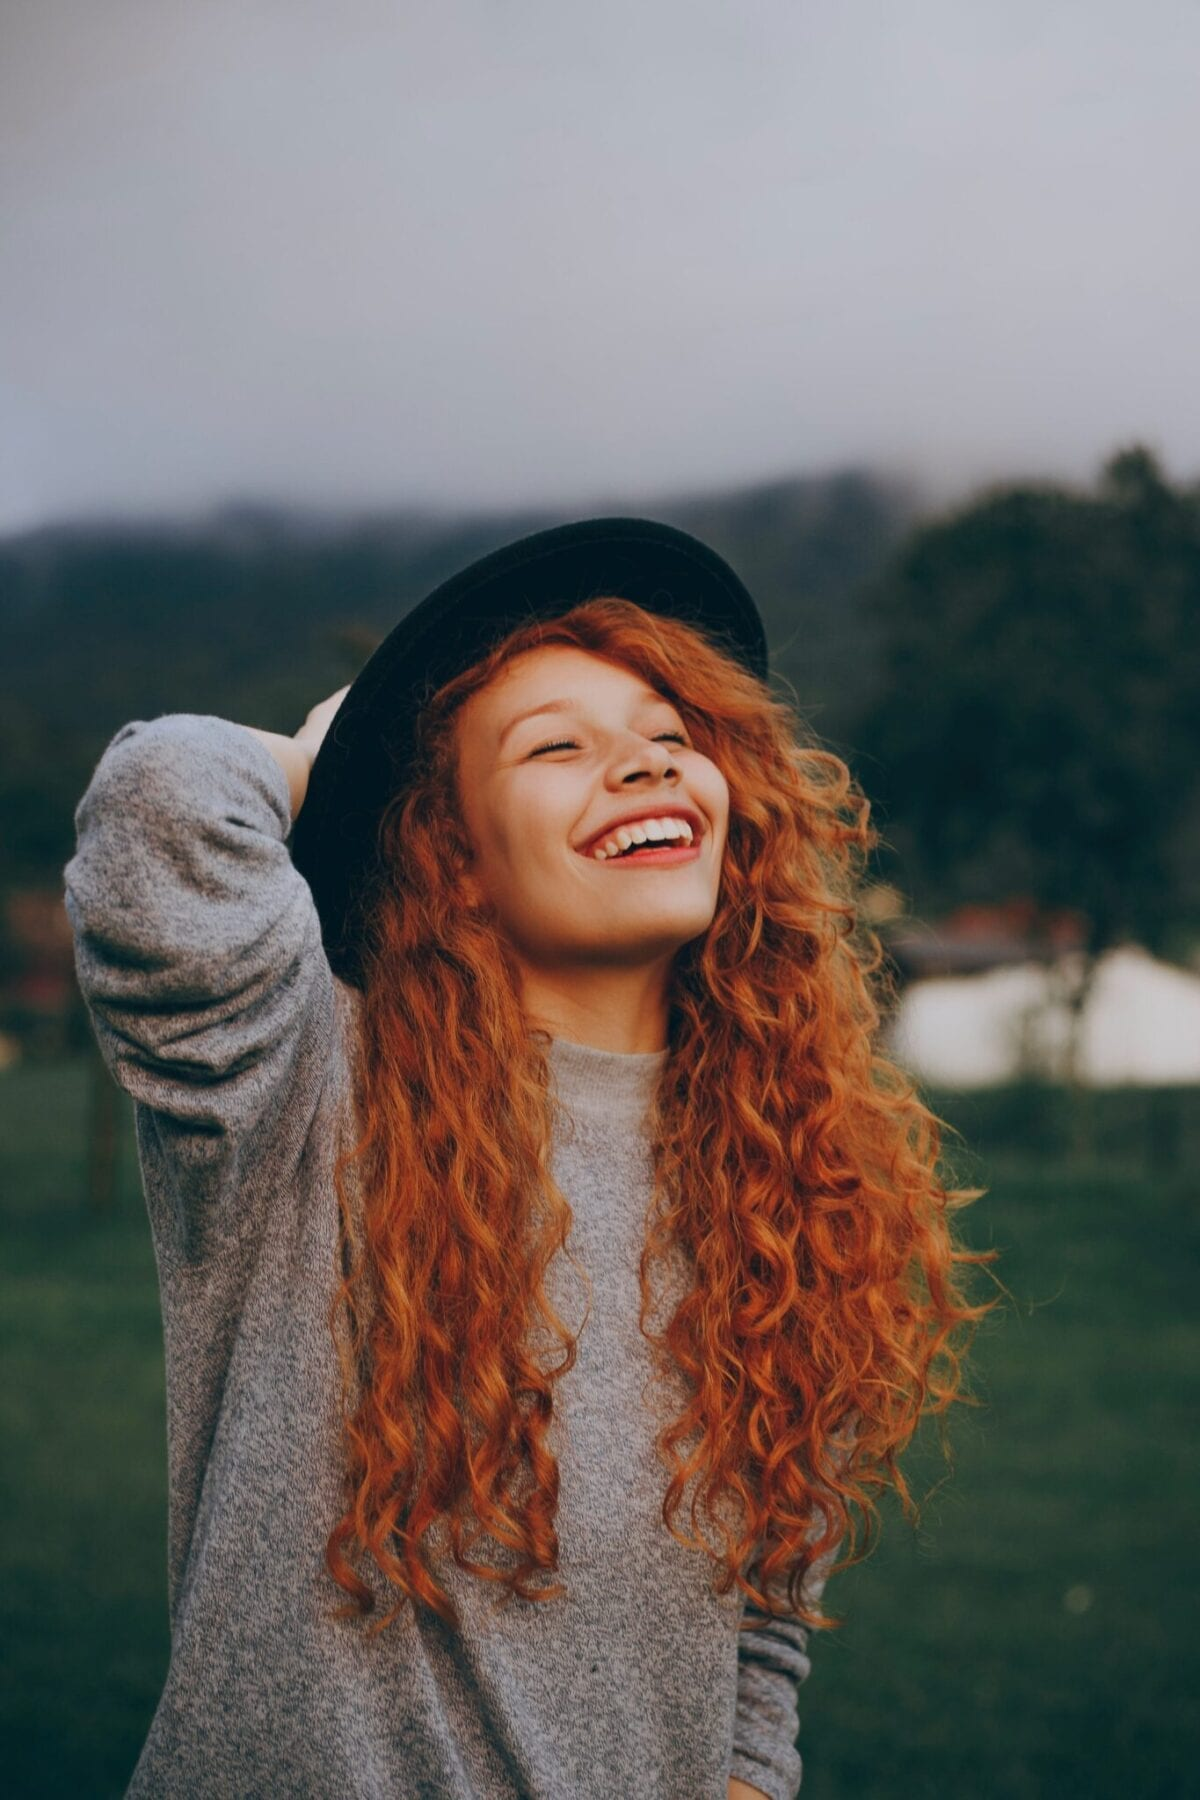 girl with red hair laughing